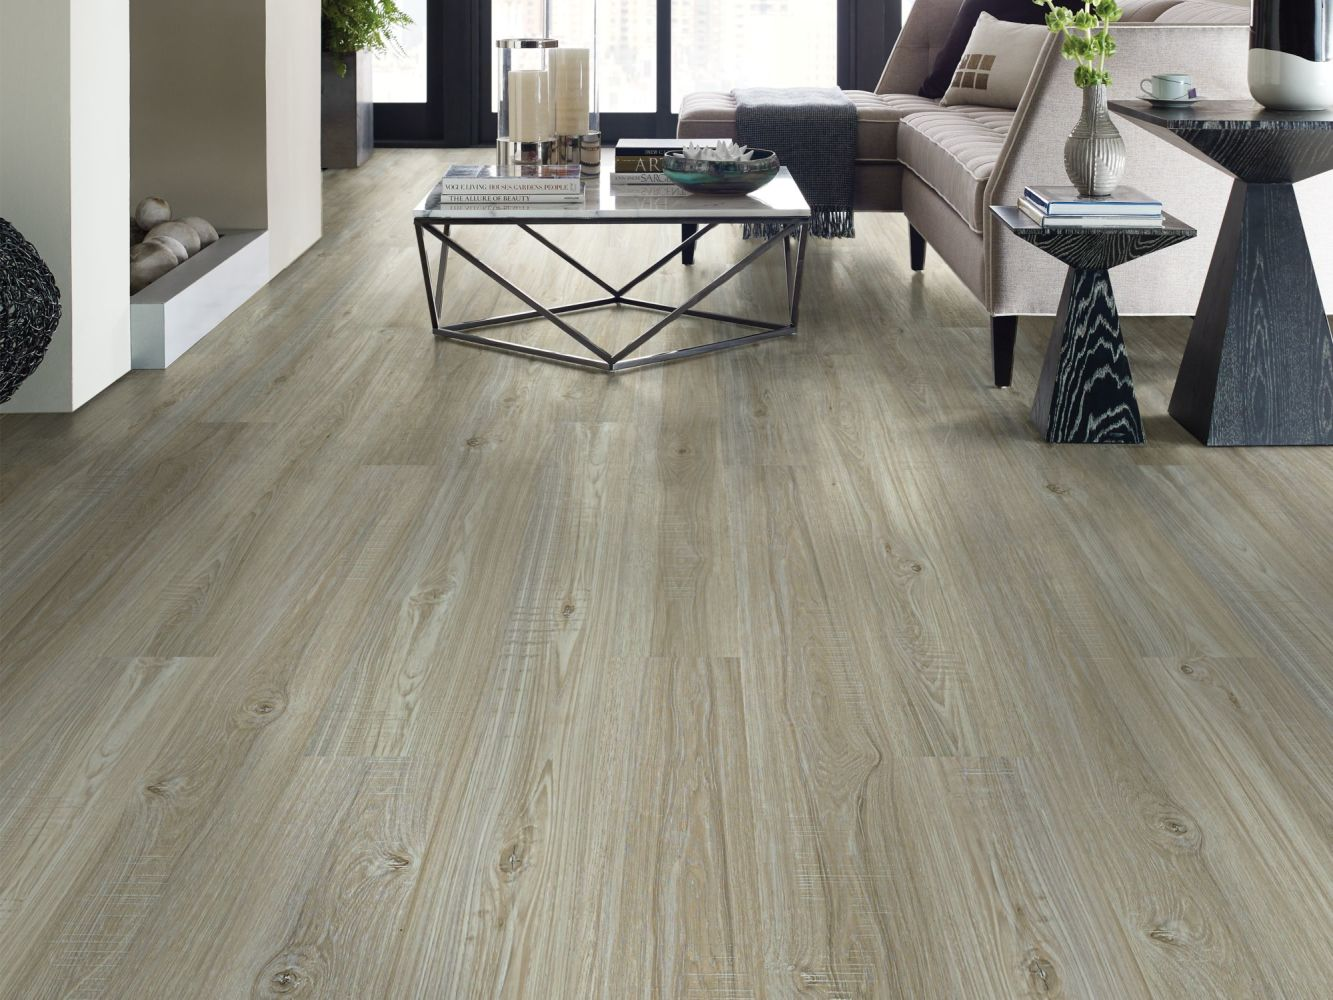 Shaw Floors Resilient Property Solutions Presto Plus Washed Oak 00509_VE284